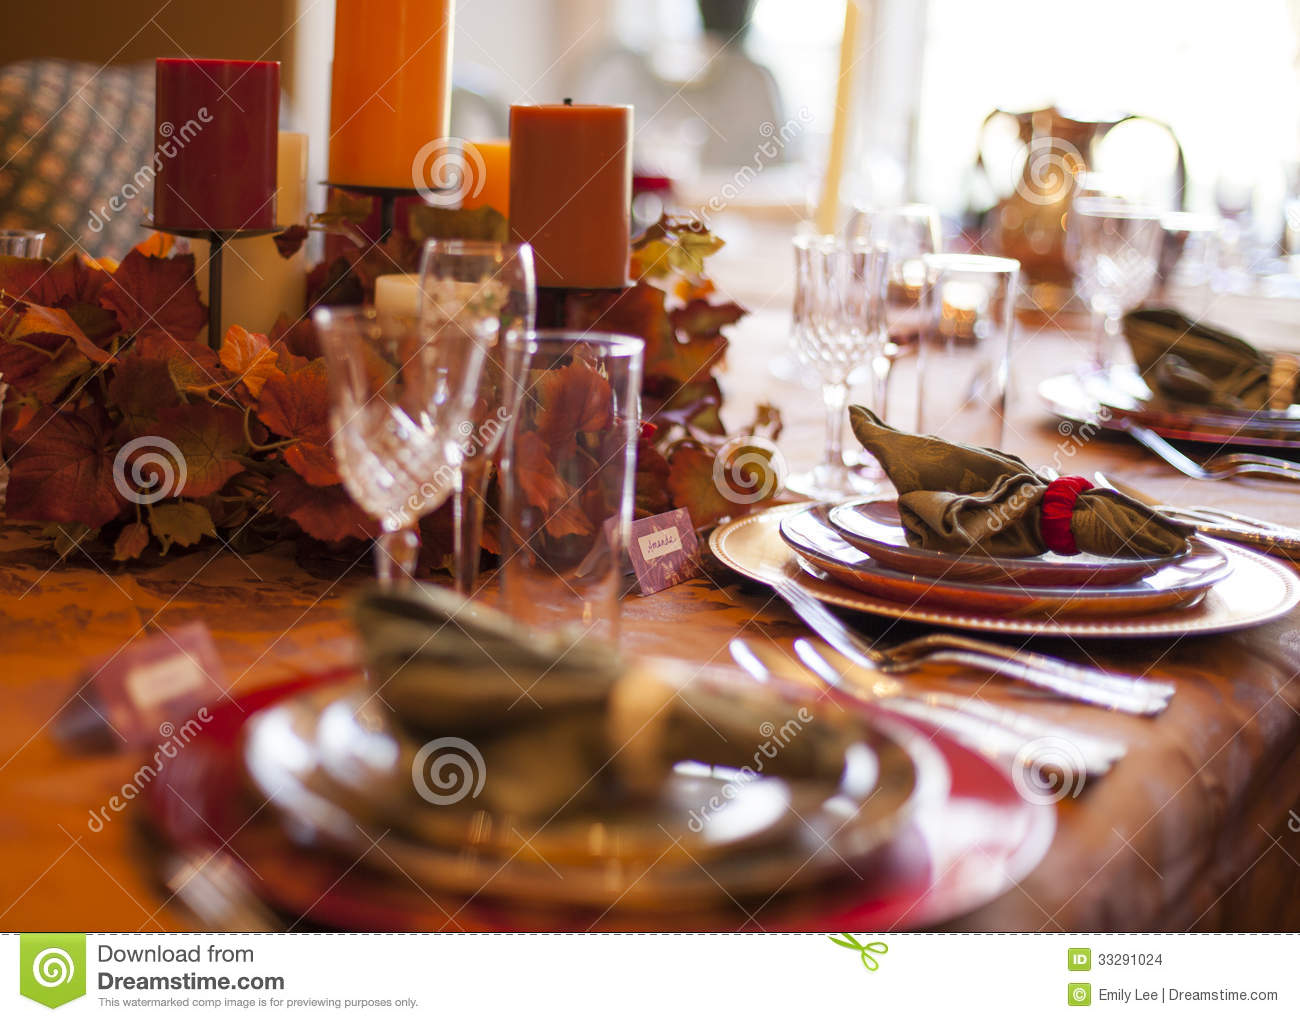 thanksgiving table stock images - image: 33291024